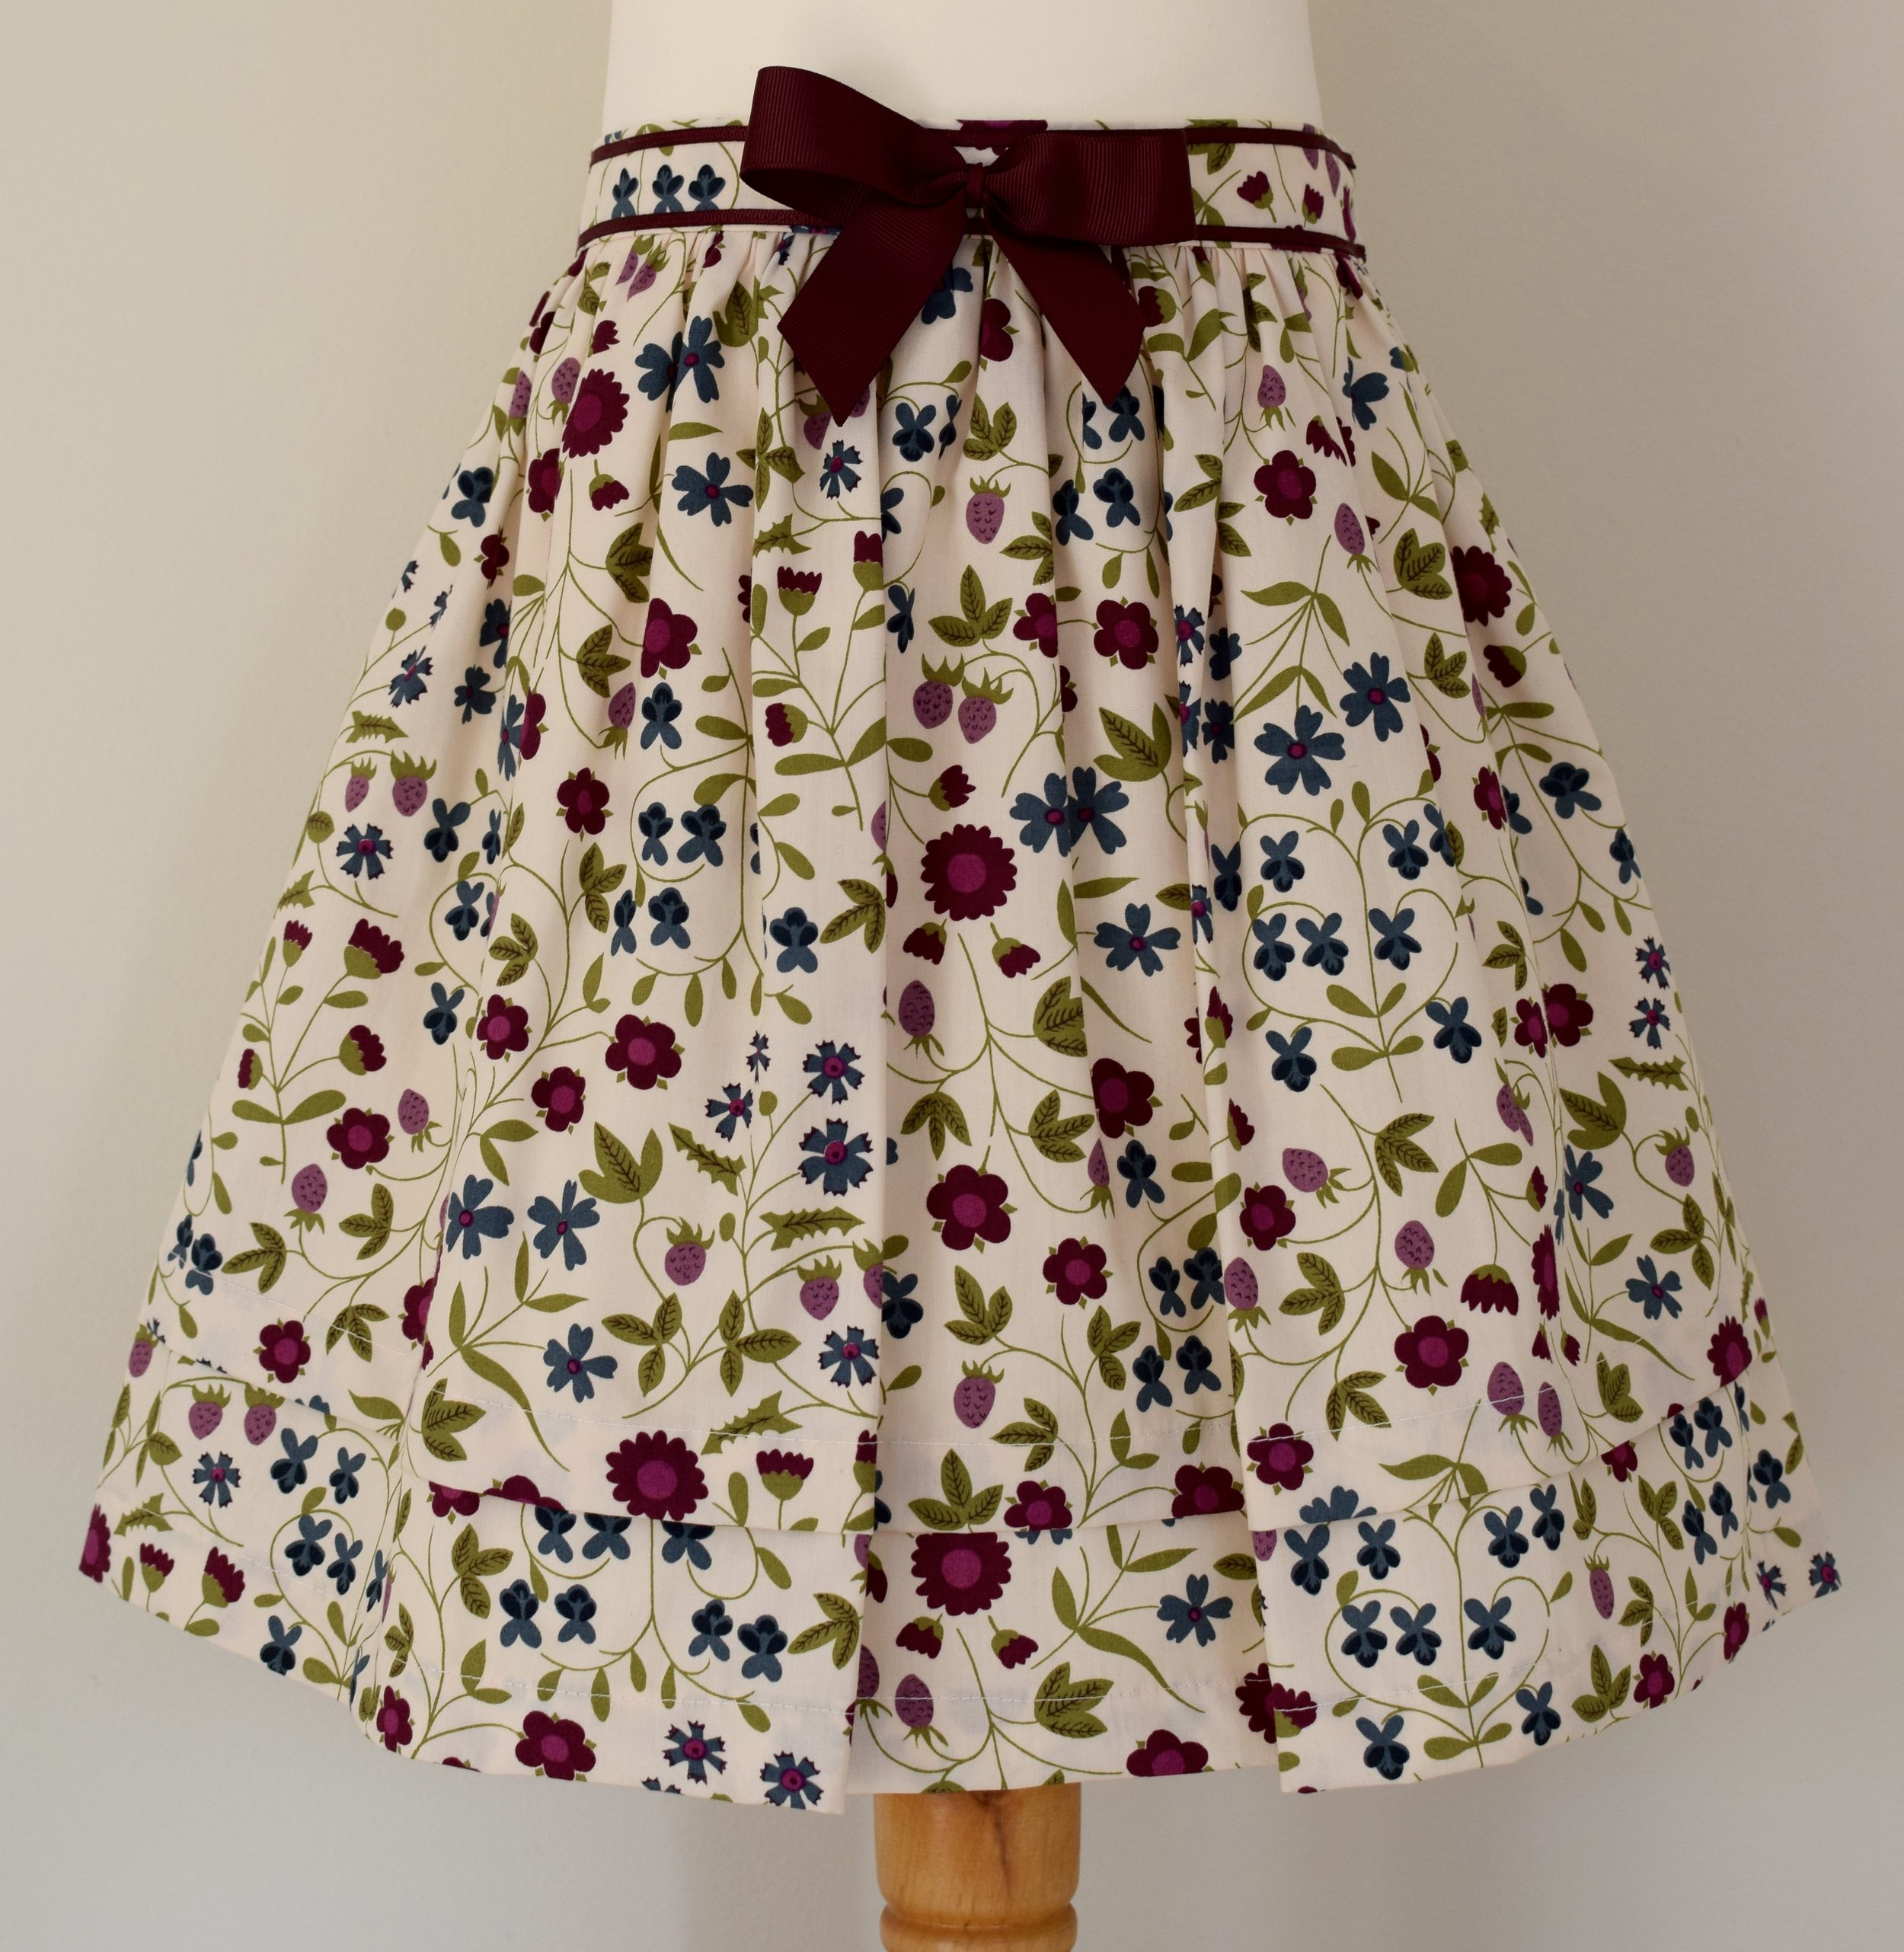 Mirabelle skirt    Description: gathered skirt, contrasting burgundy   grosgrain ribbon bow, concealed zip at back, adjustable elastic waist   Sizes: available in 6y  £34